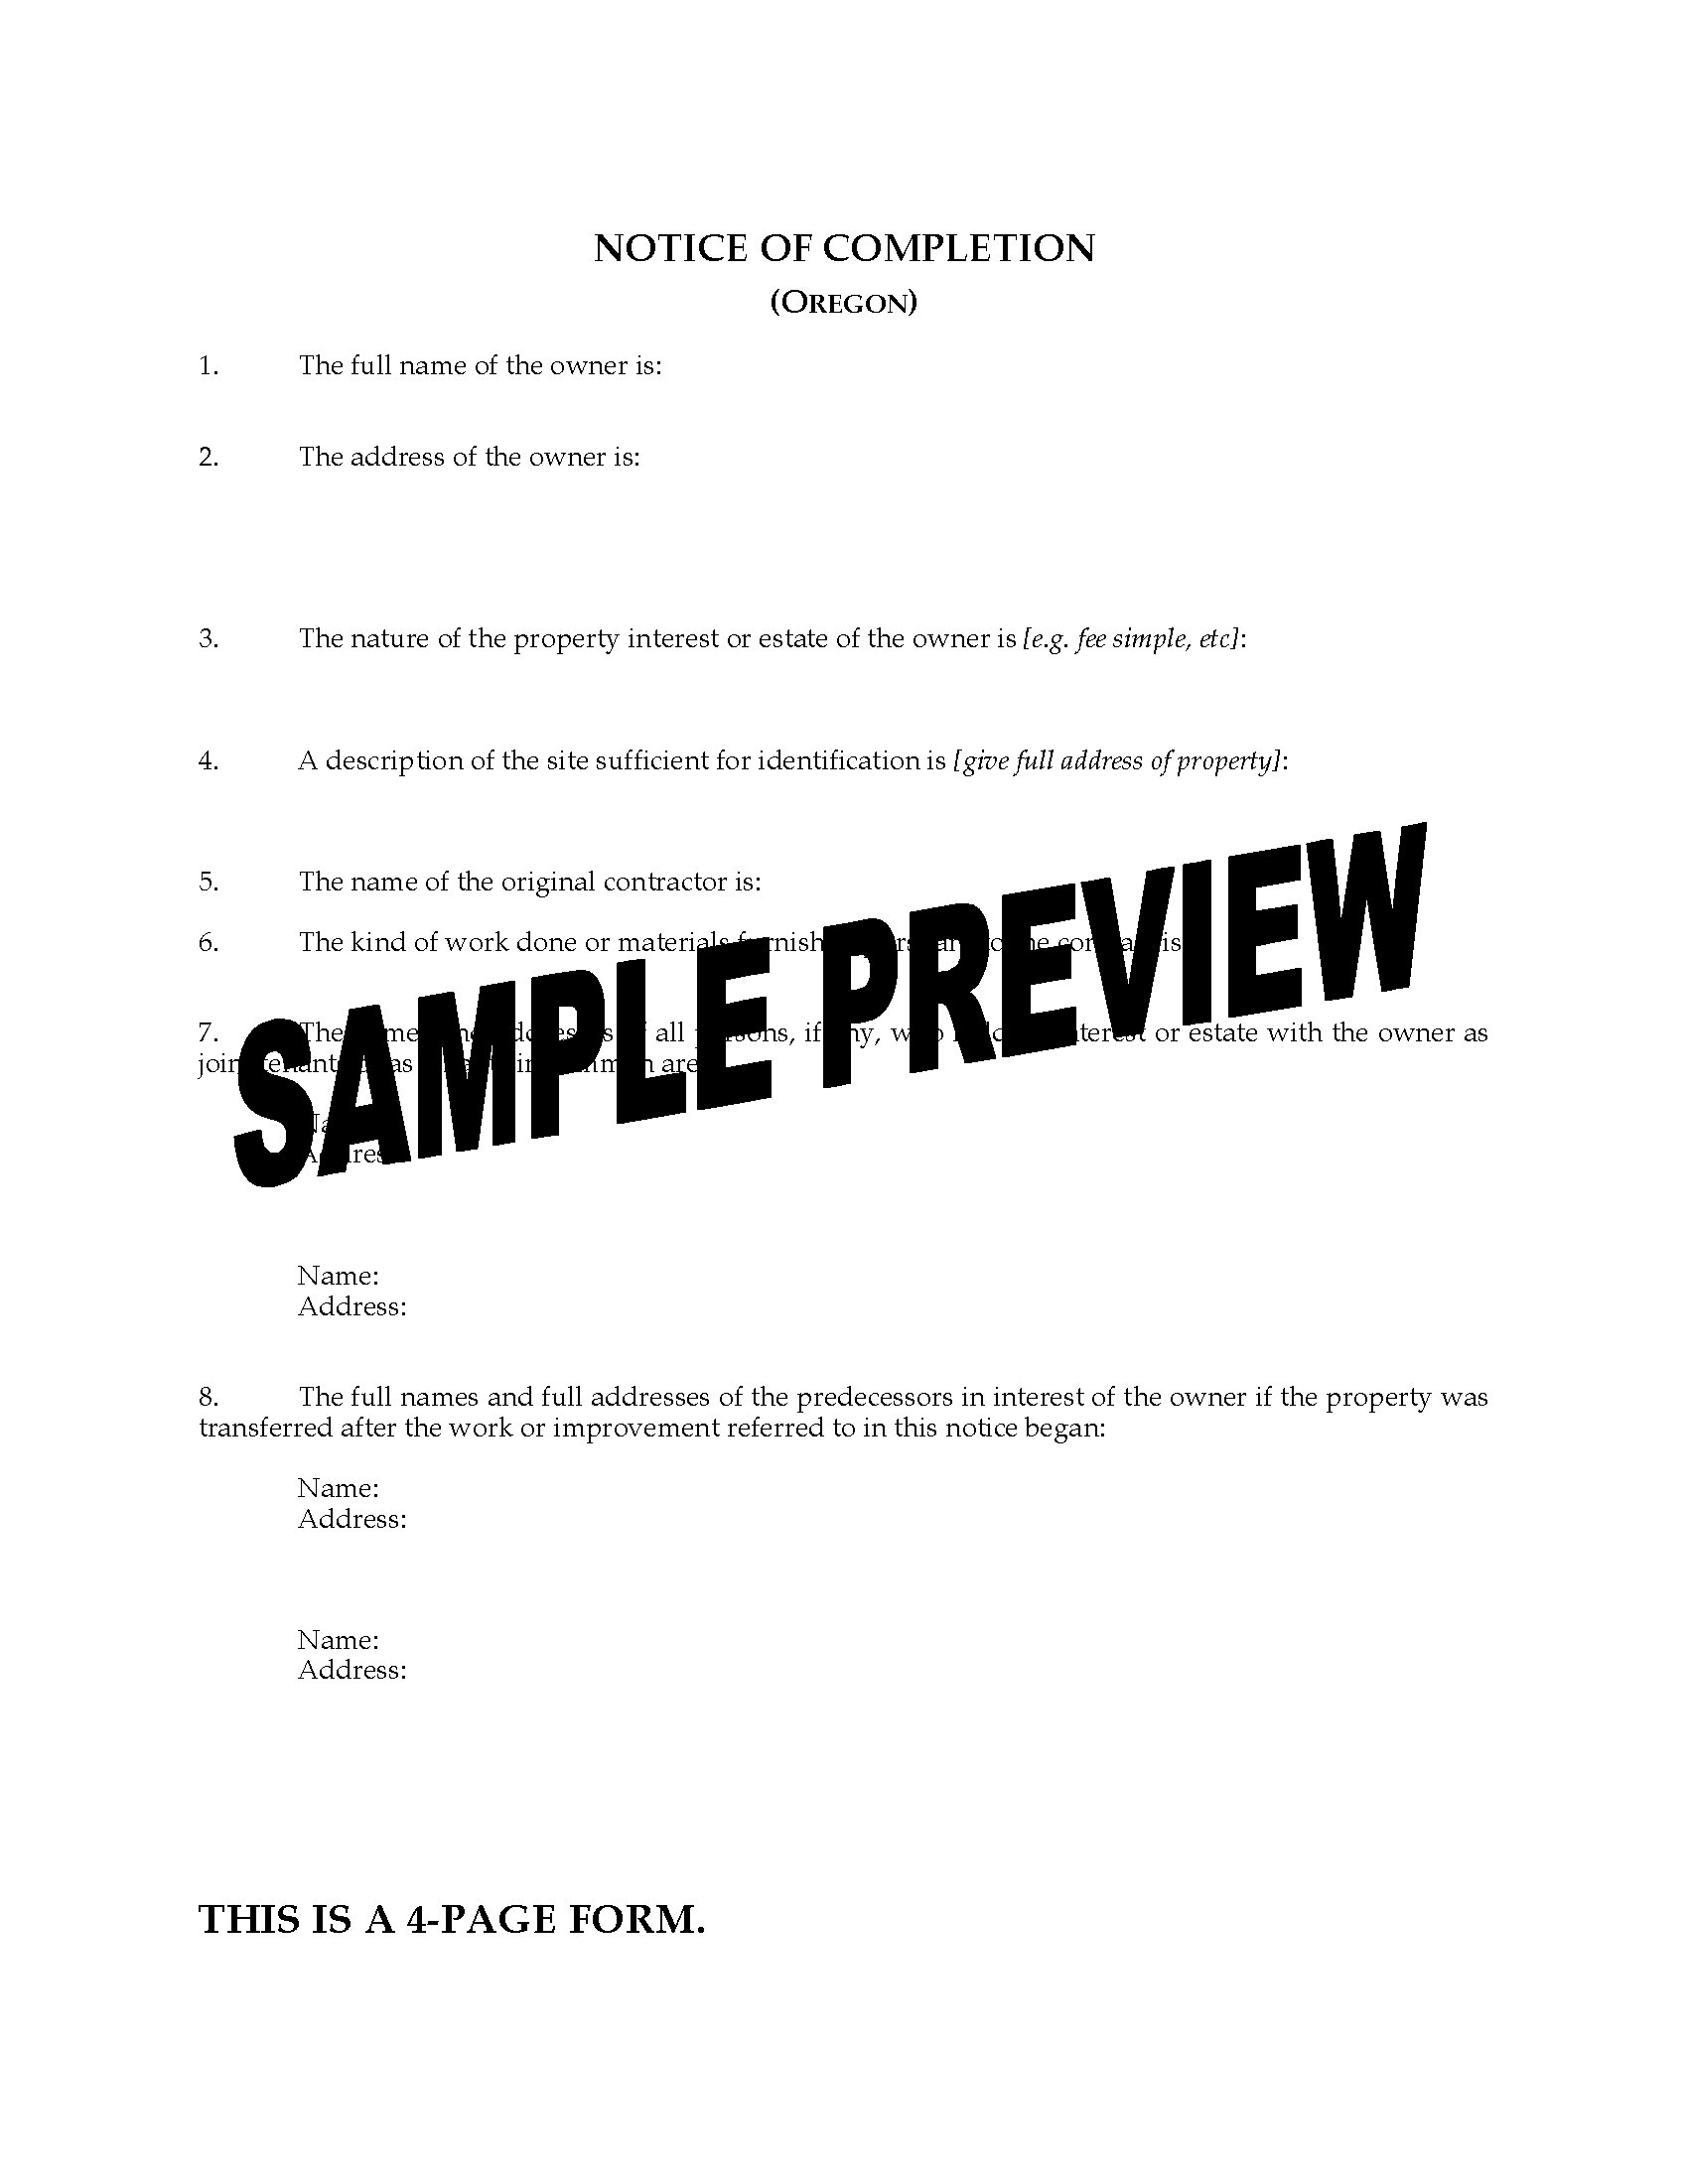 Nevada Revised Statutes >> Oregon Notice of Completion | Legal Forms and Business ...